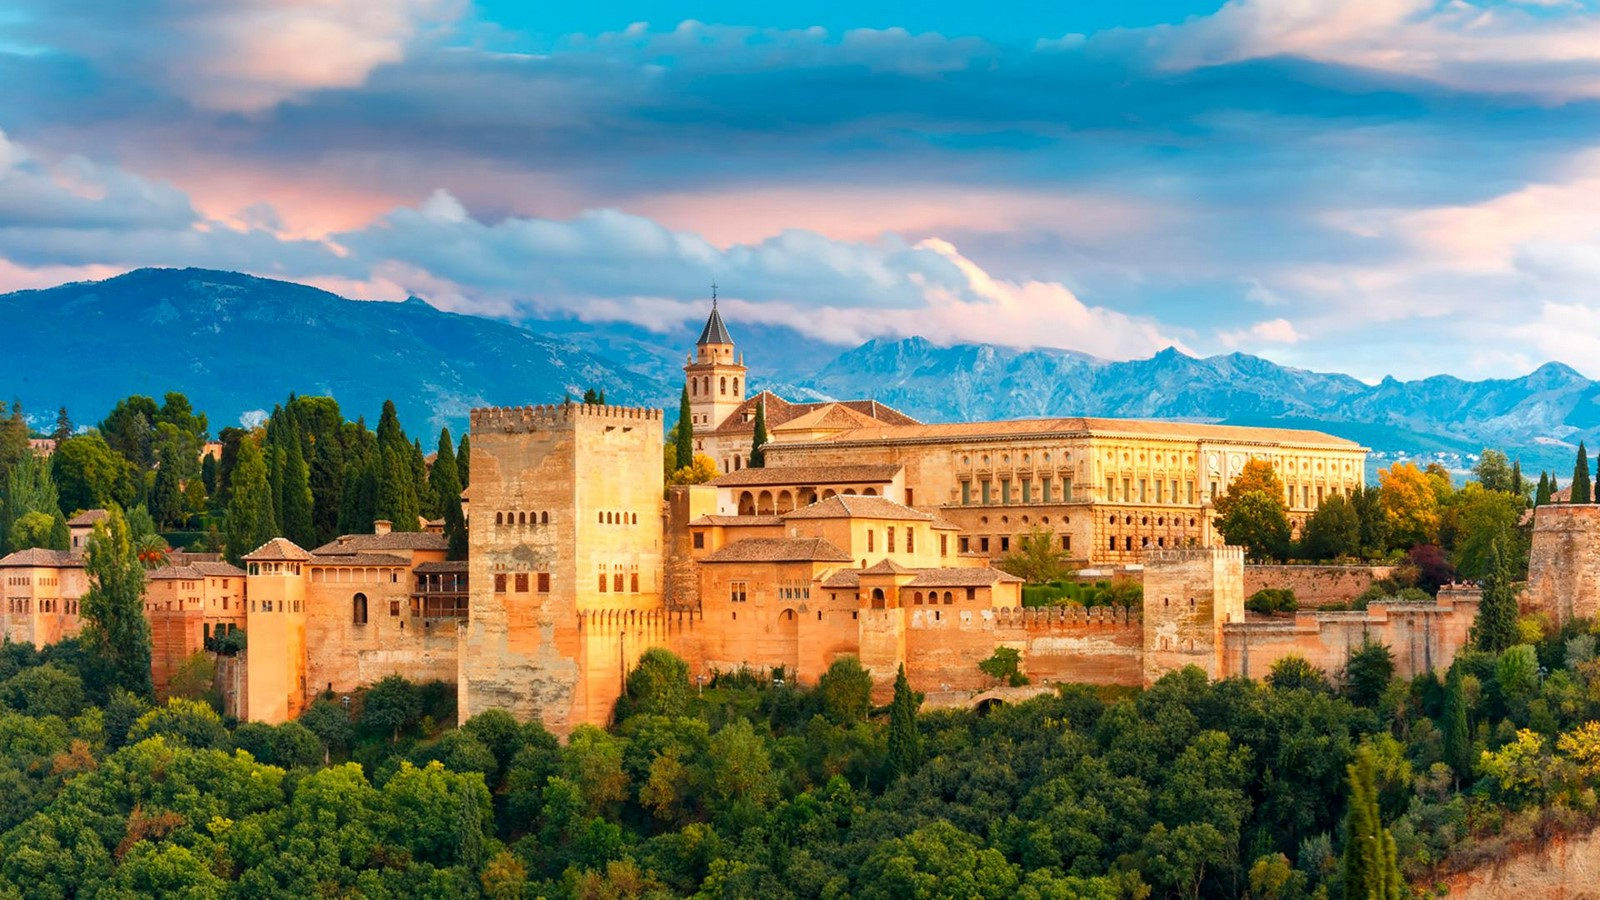 The Alhambra, Spain - Sheet1